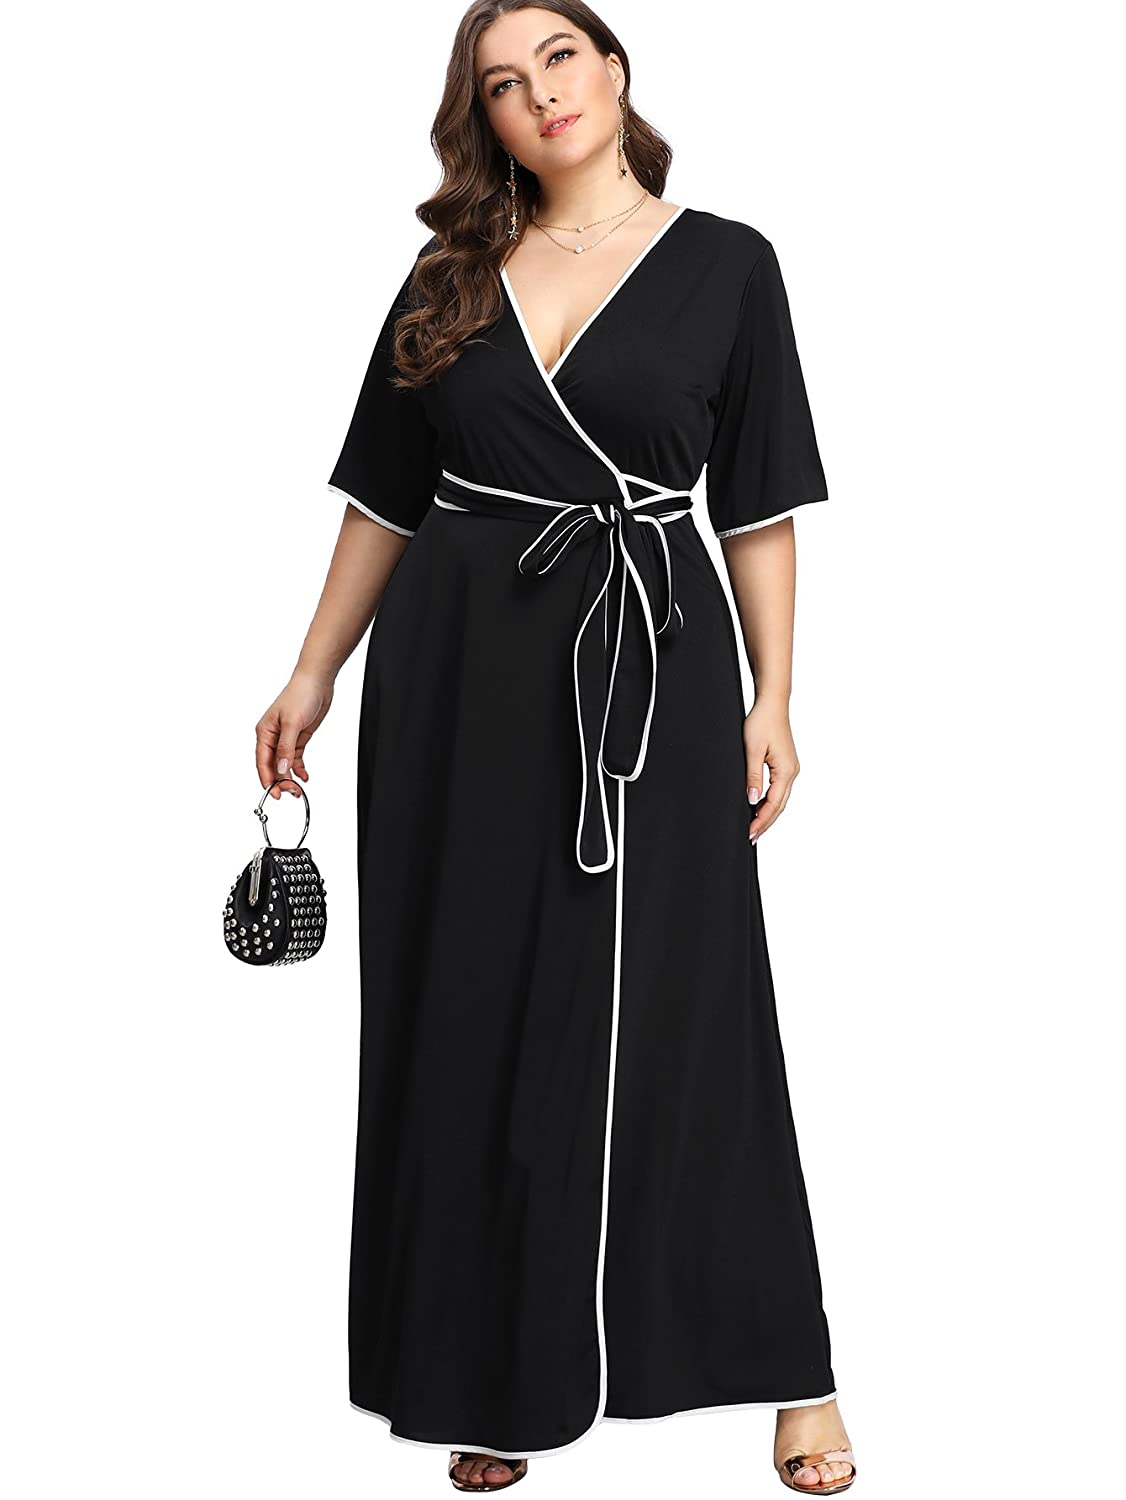 b005df20ad Romwe Women s V Neck Wrap Dress with Belt Cute Maxi Dress at Amazon Women s  Clothing store